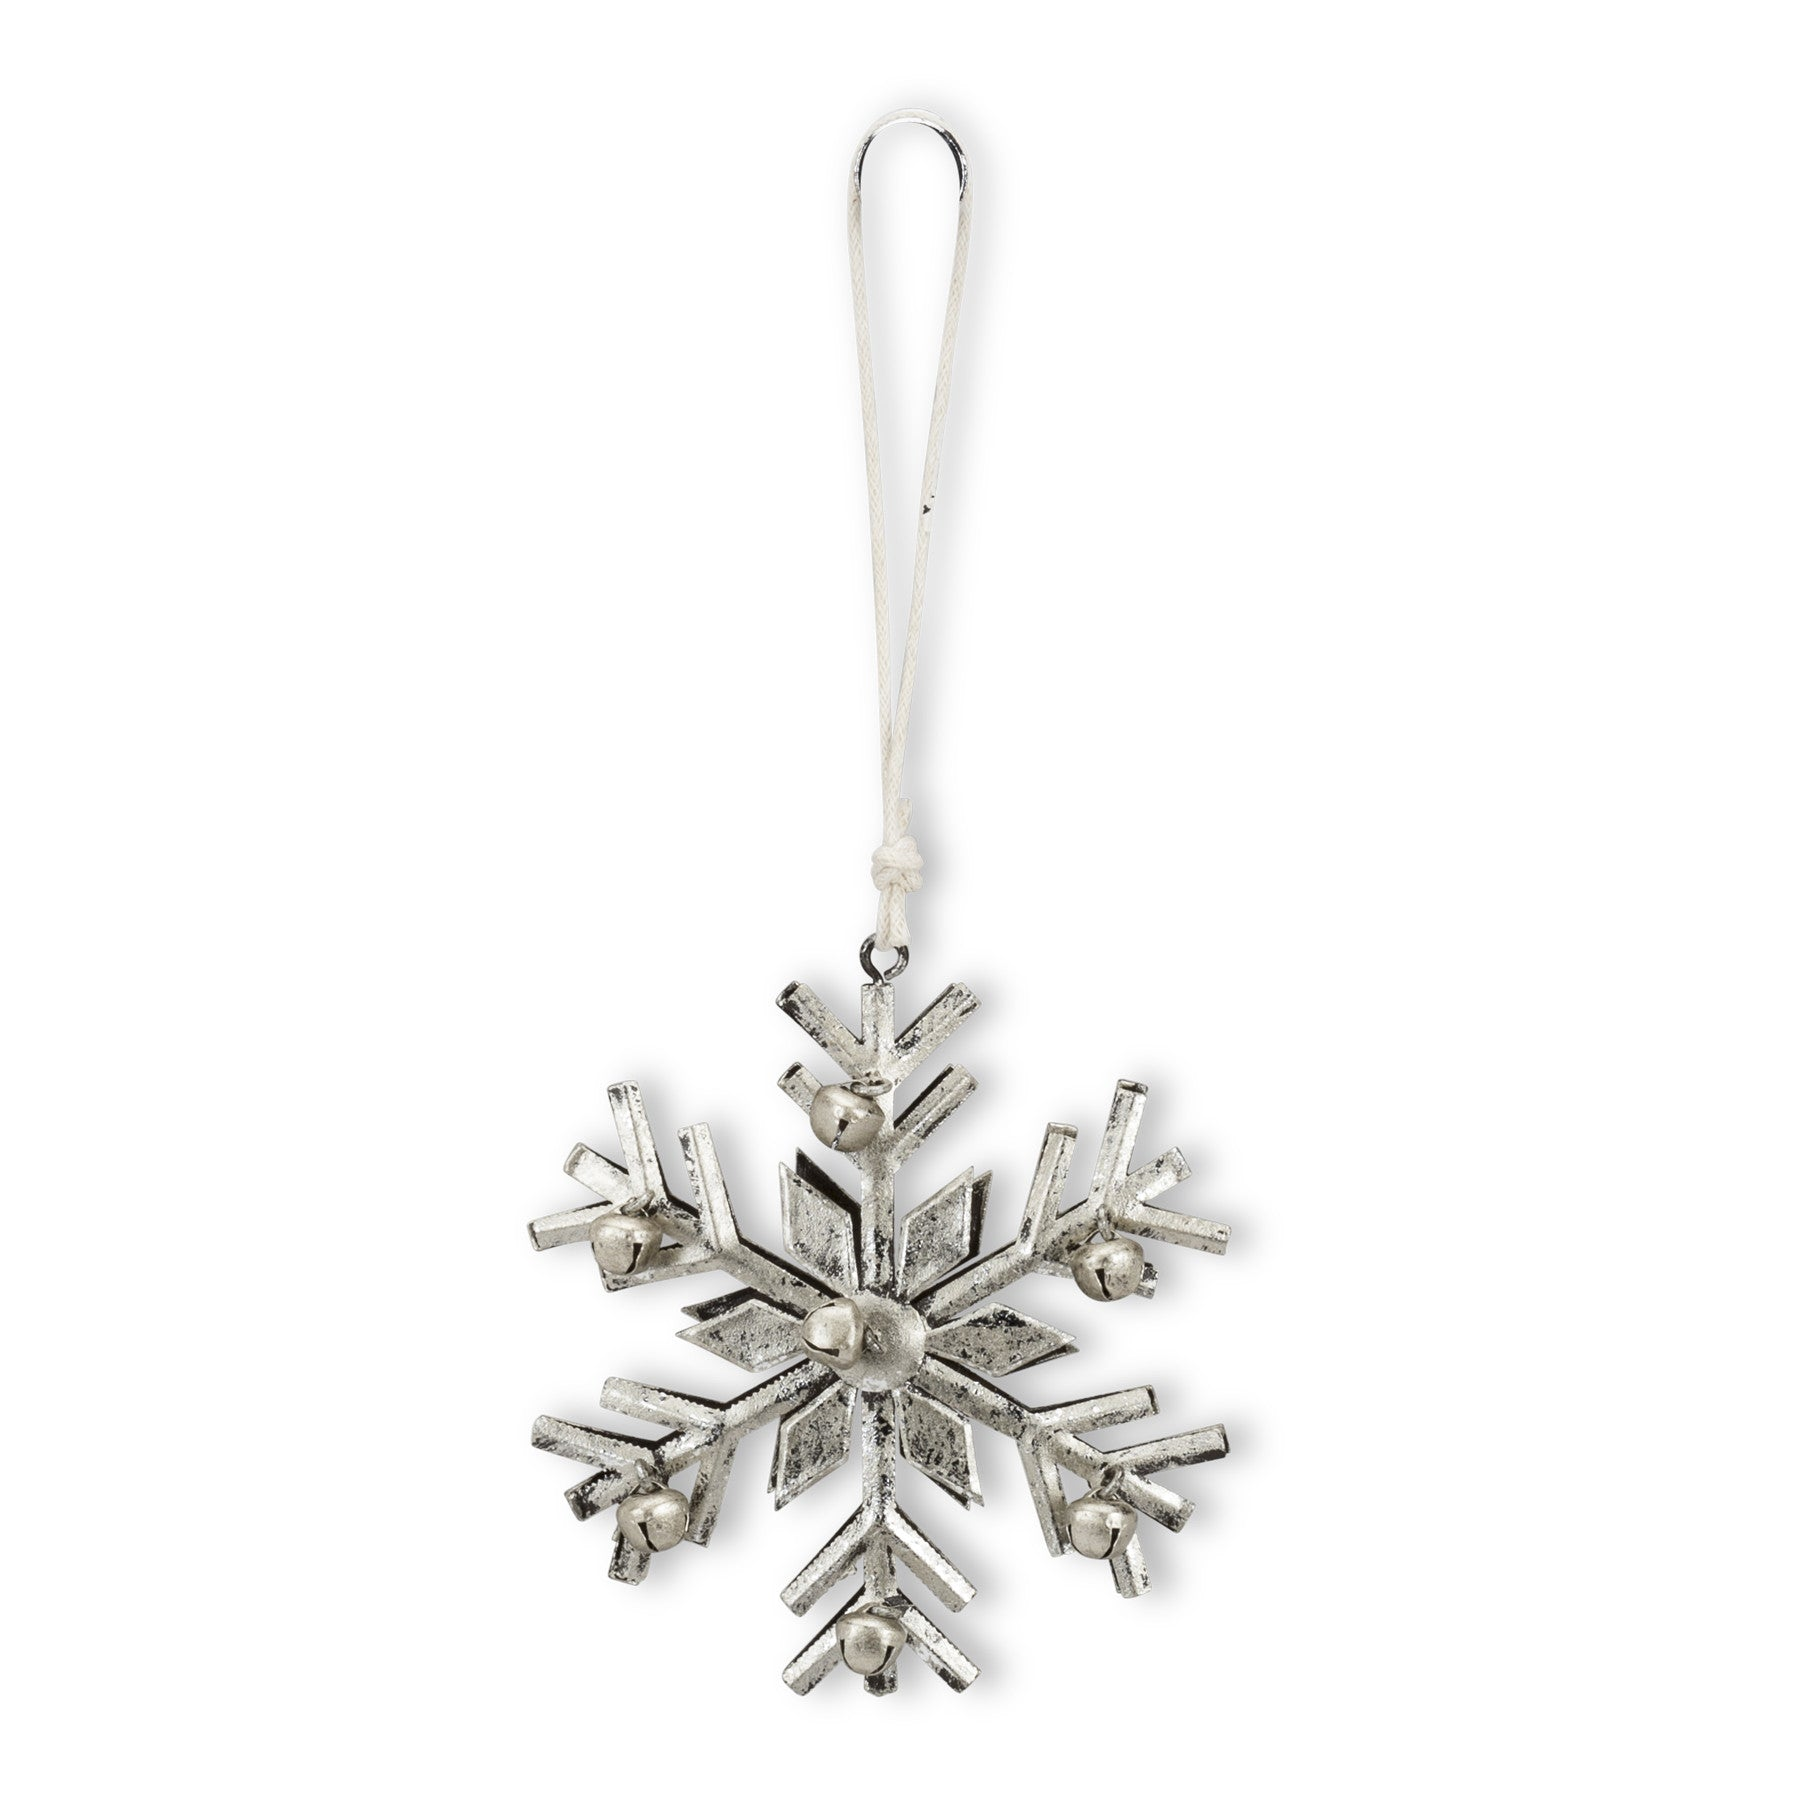 Silver Metal Snowflake Ornament with Bells, AC-Abbott Collection, Putti Fine Furnishings